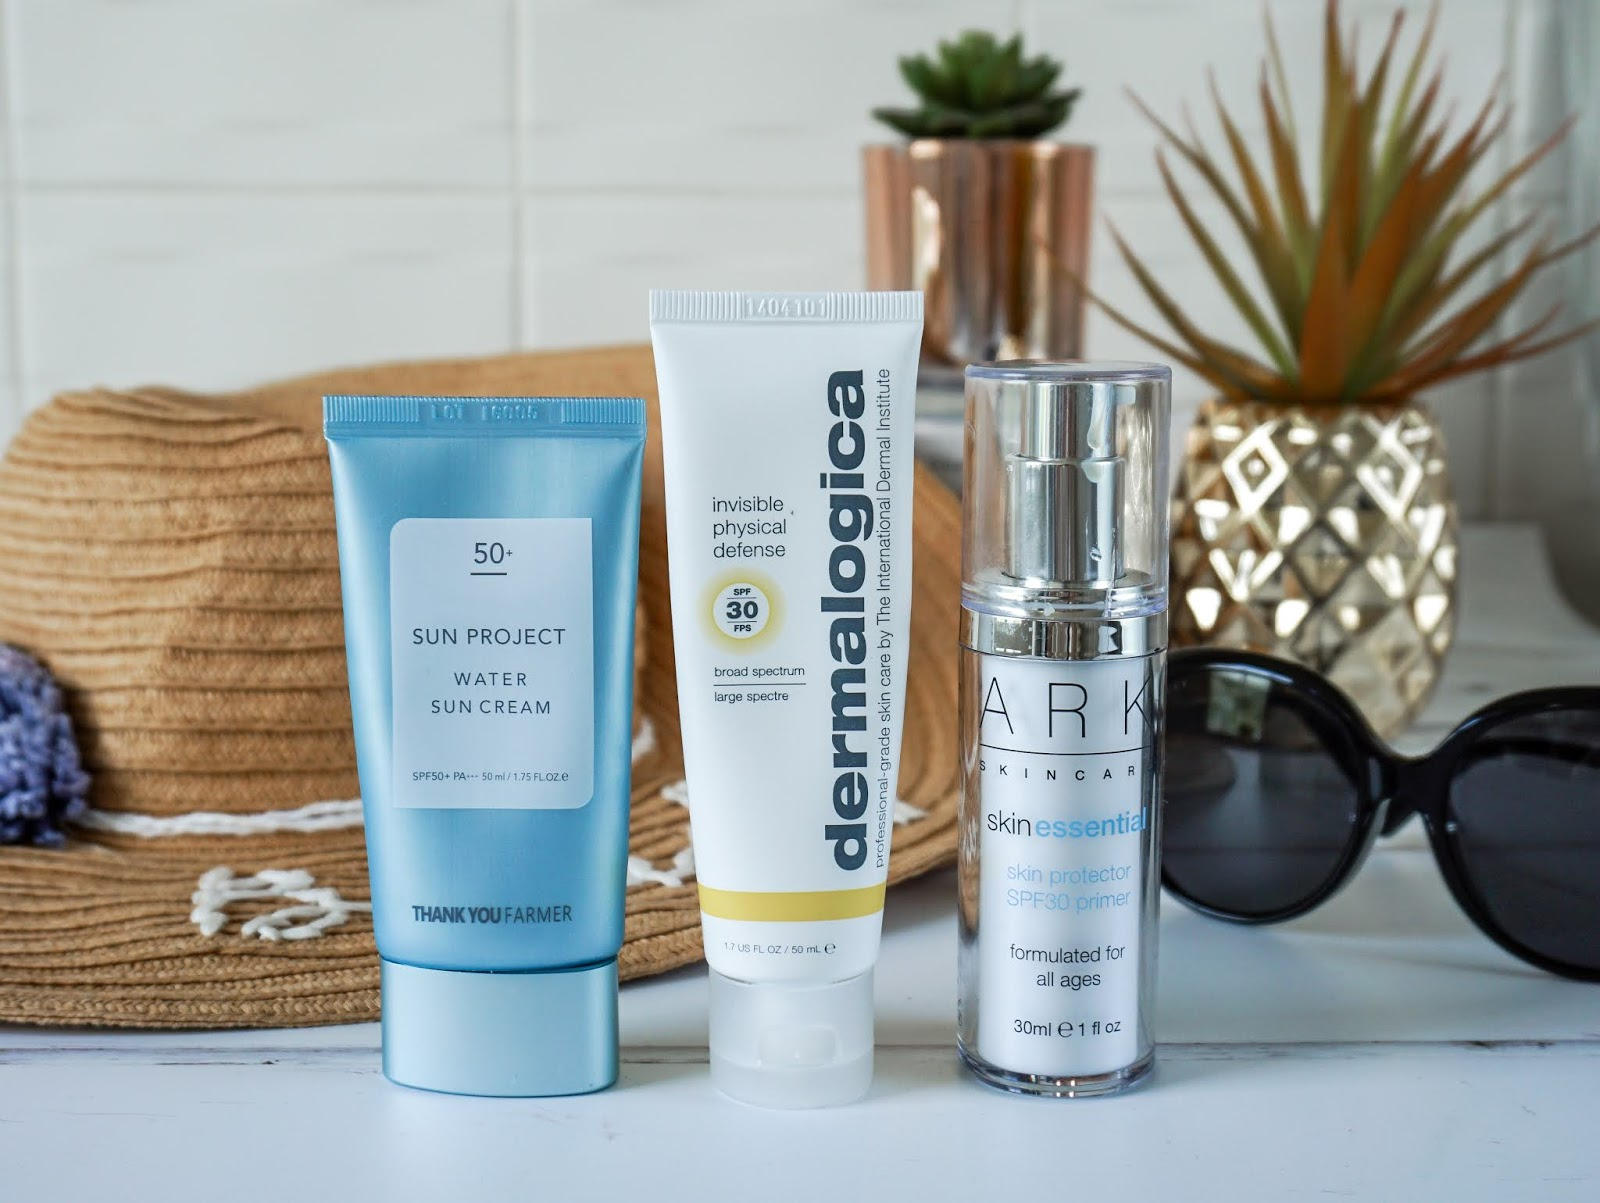 Best facial SPF products, Thank you Farmer Sun Project Water Sun Cream, Dermalogica Invisible Physical Defence SPF30, ARK Skincare Skin Protector SPF30 Primer